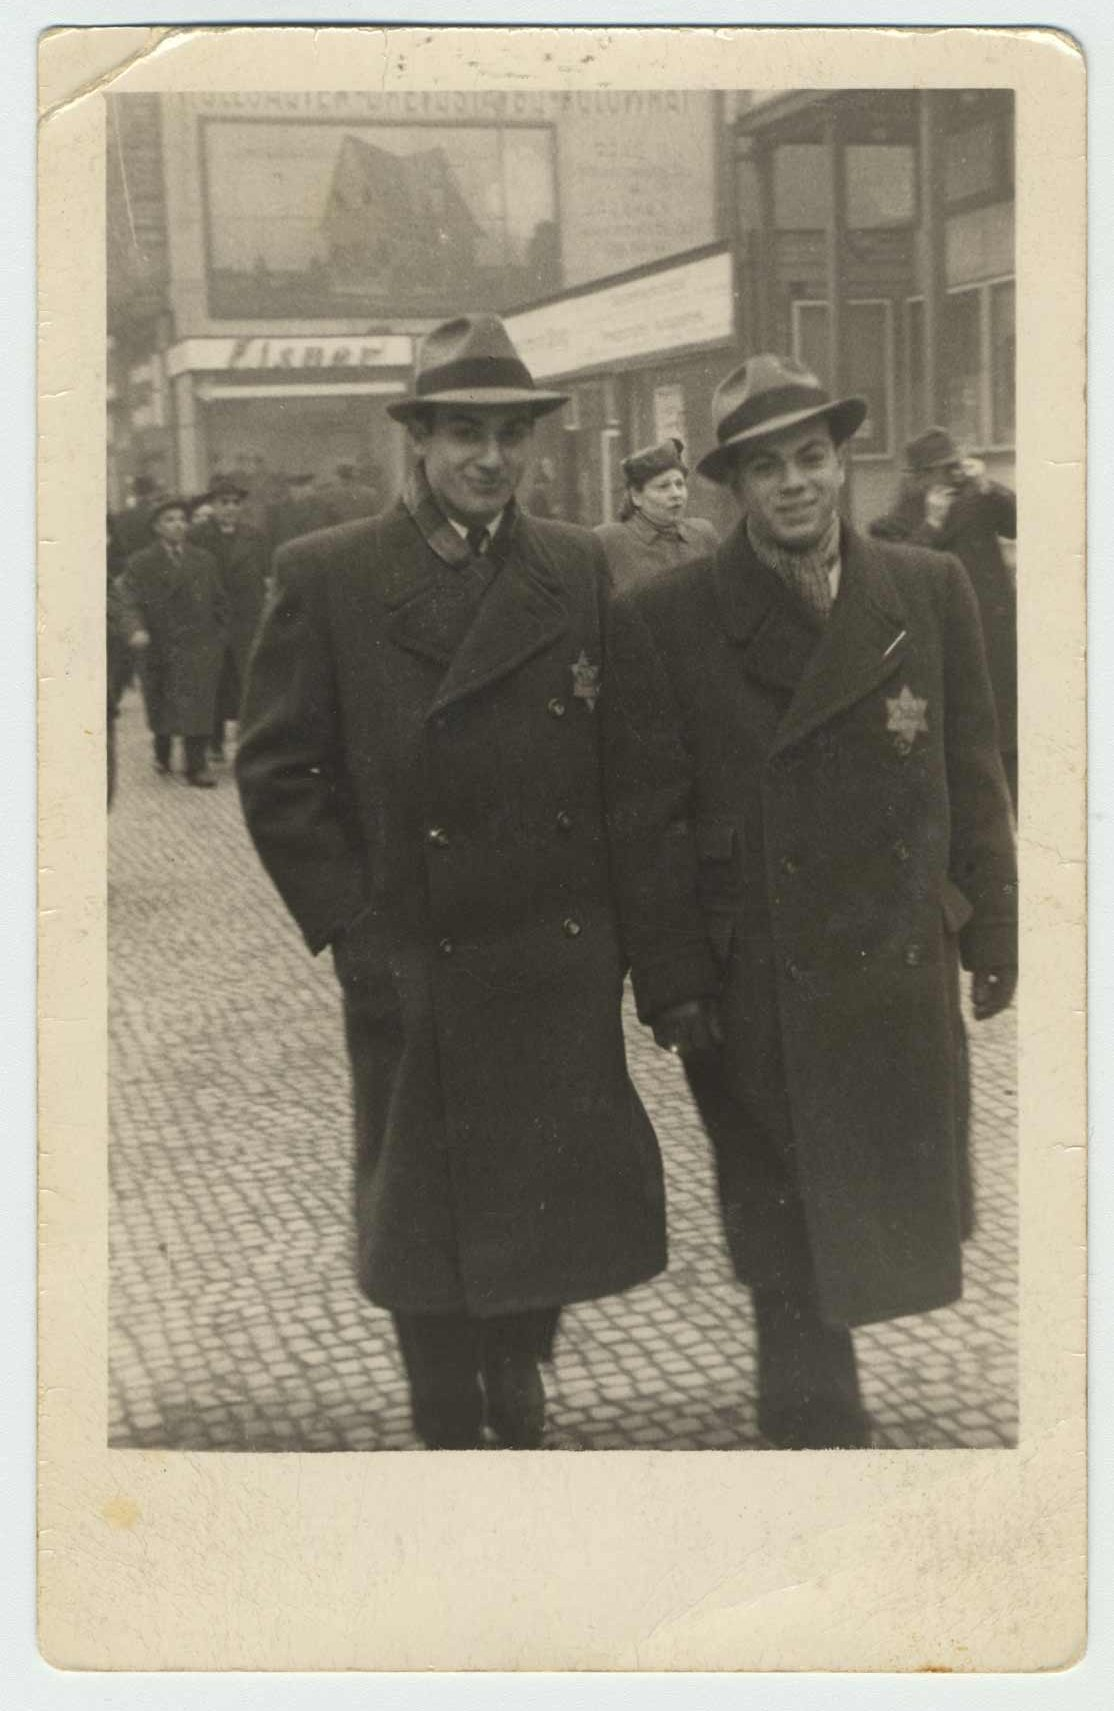 George and Karel Ehrman, photographed on Prikopy street in Prague in 1941. They both wear a yellow star on their coats.